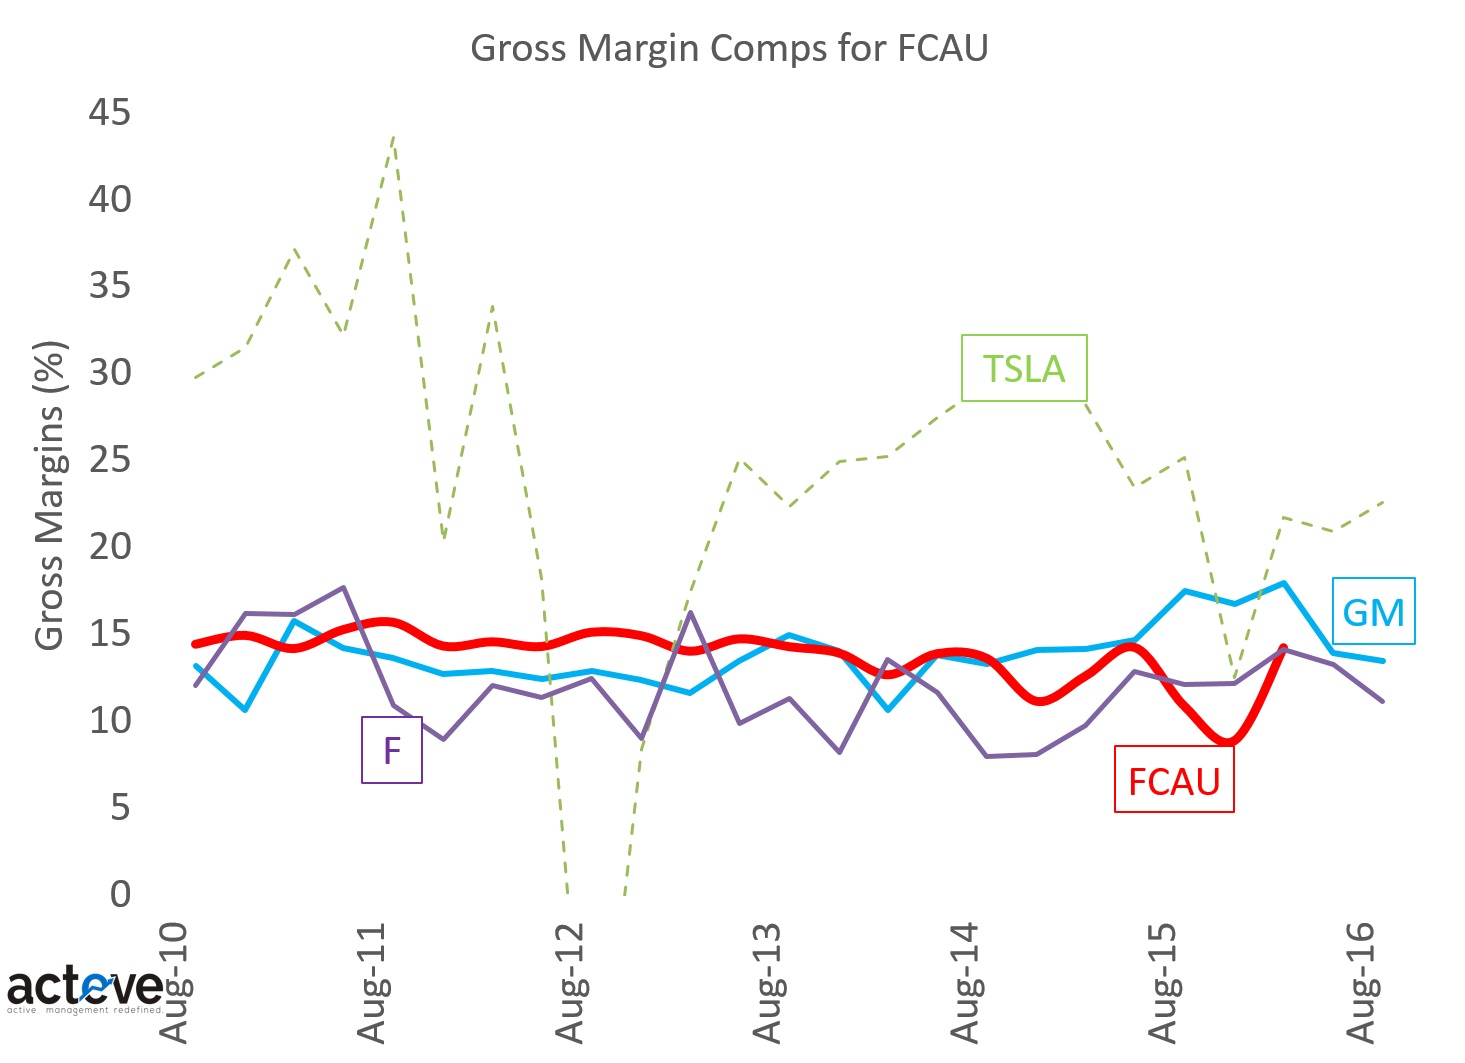 FCAU Gross Margin Comps 120816